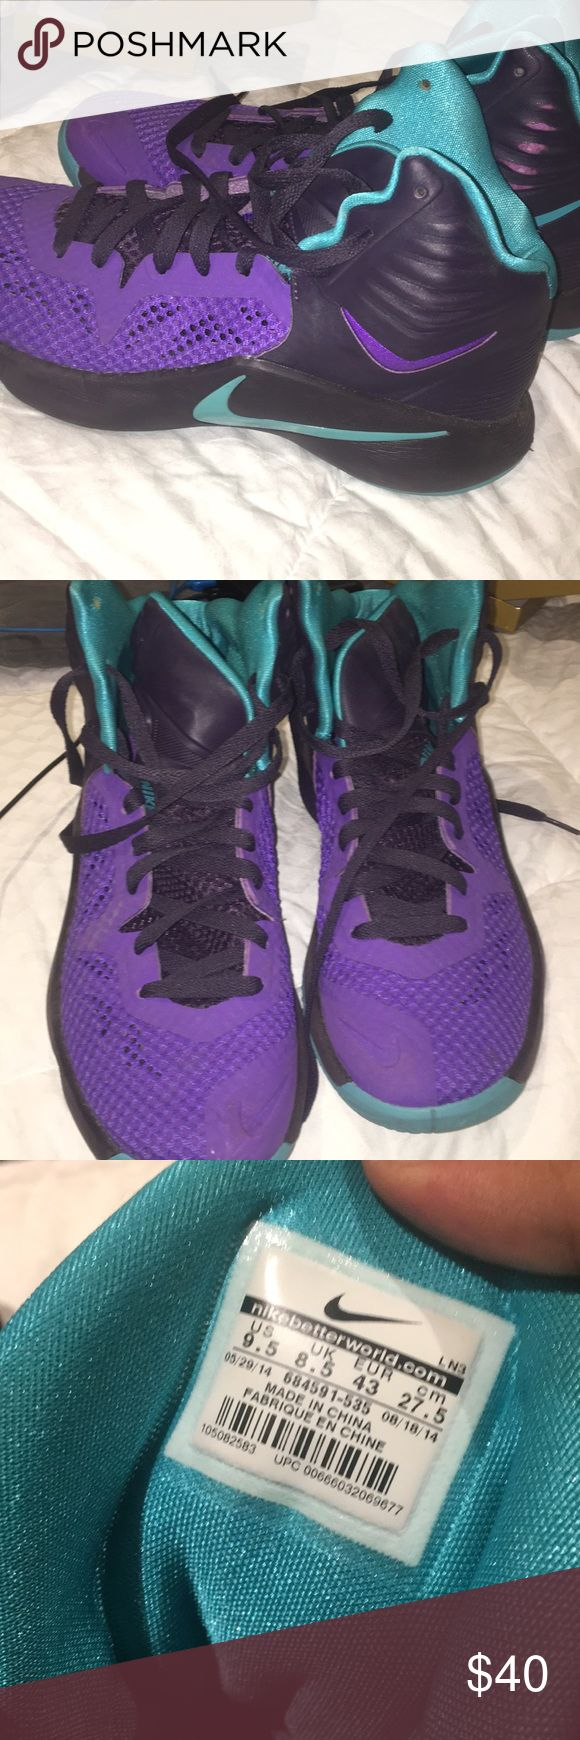 Nike Men's hyperfuse shoes size 9.5 Nike Men's hyperfuse basketball shoe size 9.5, used for half a basketball season, still in good condition, lots of life left in them! Great price as well, leave offers:) Nike Shoes